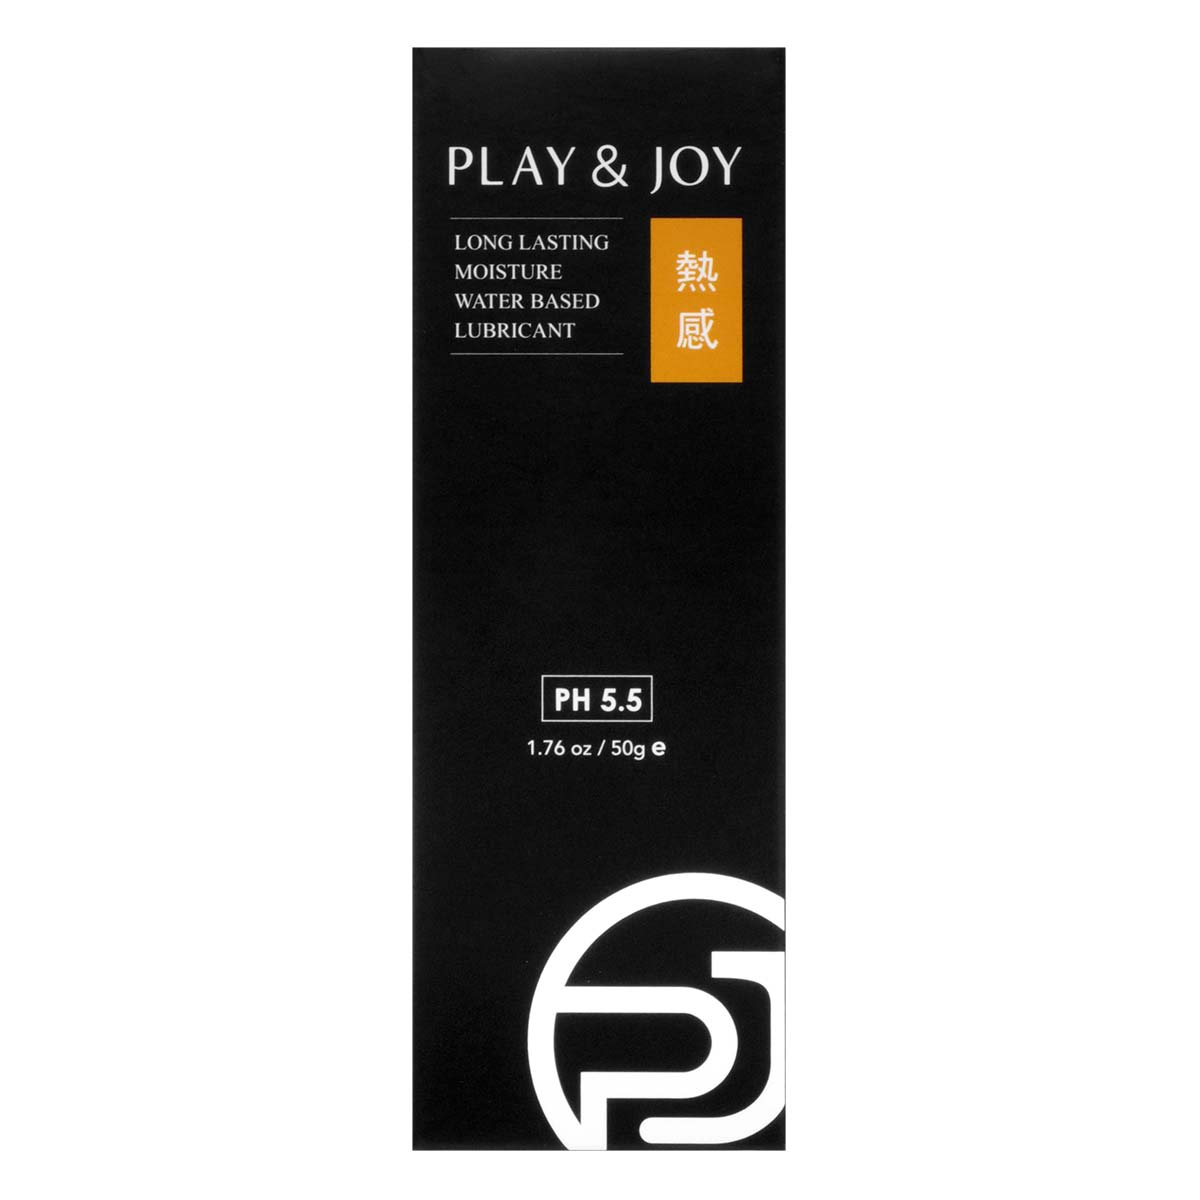 PLAY & JOY Hot & Sexy 50ml Water-based Lubricant